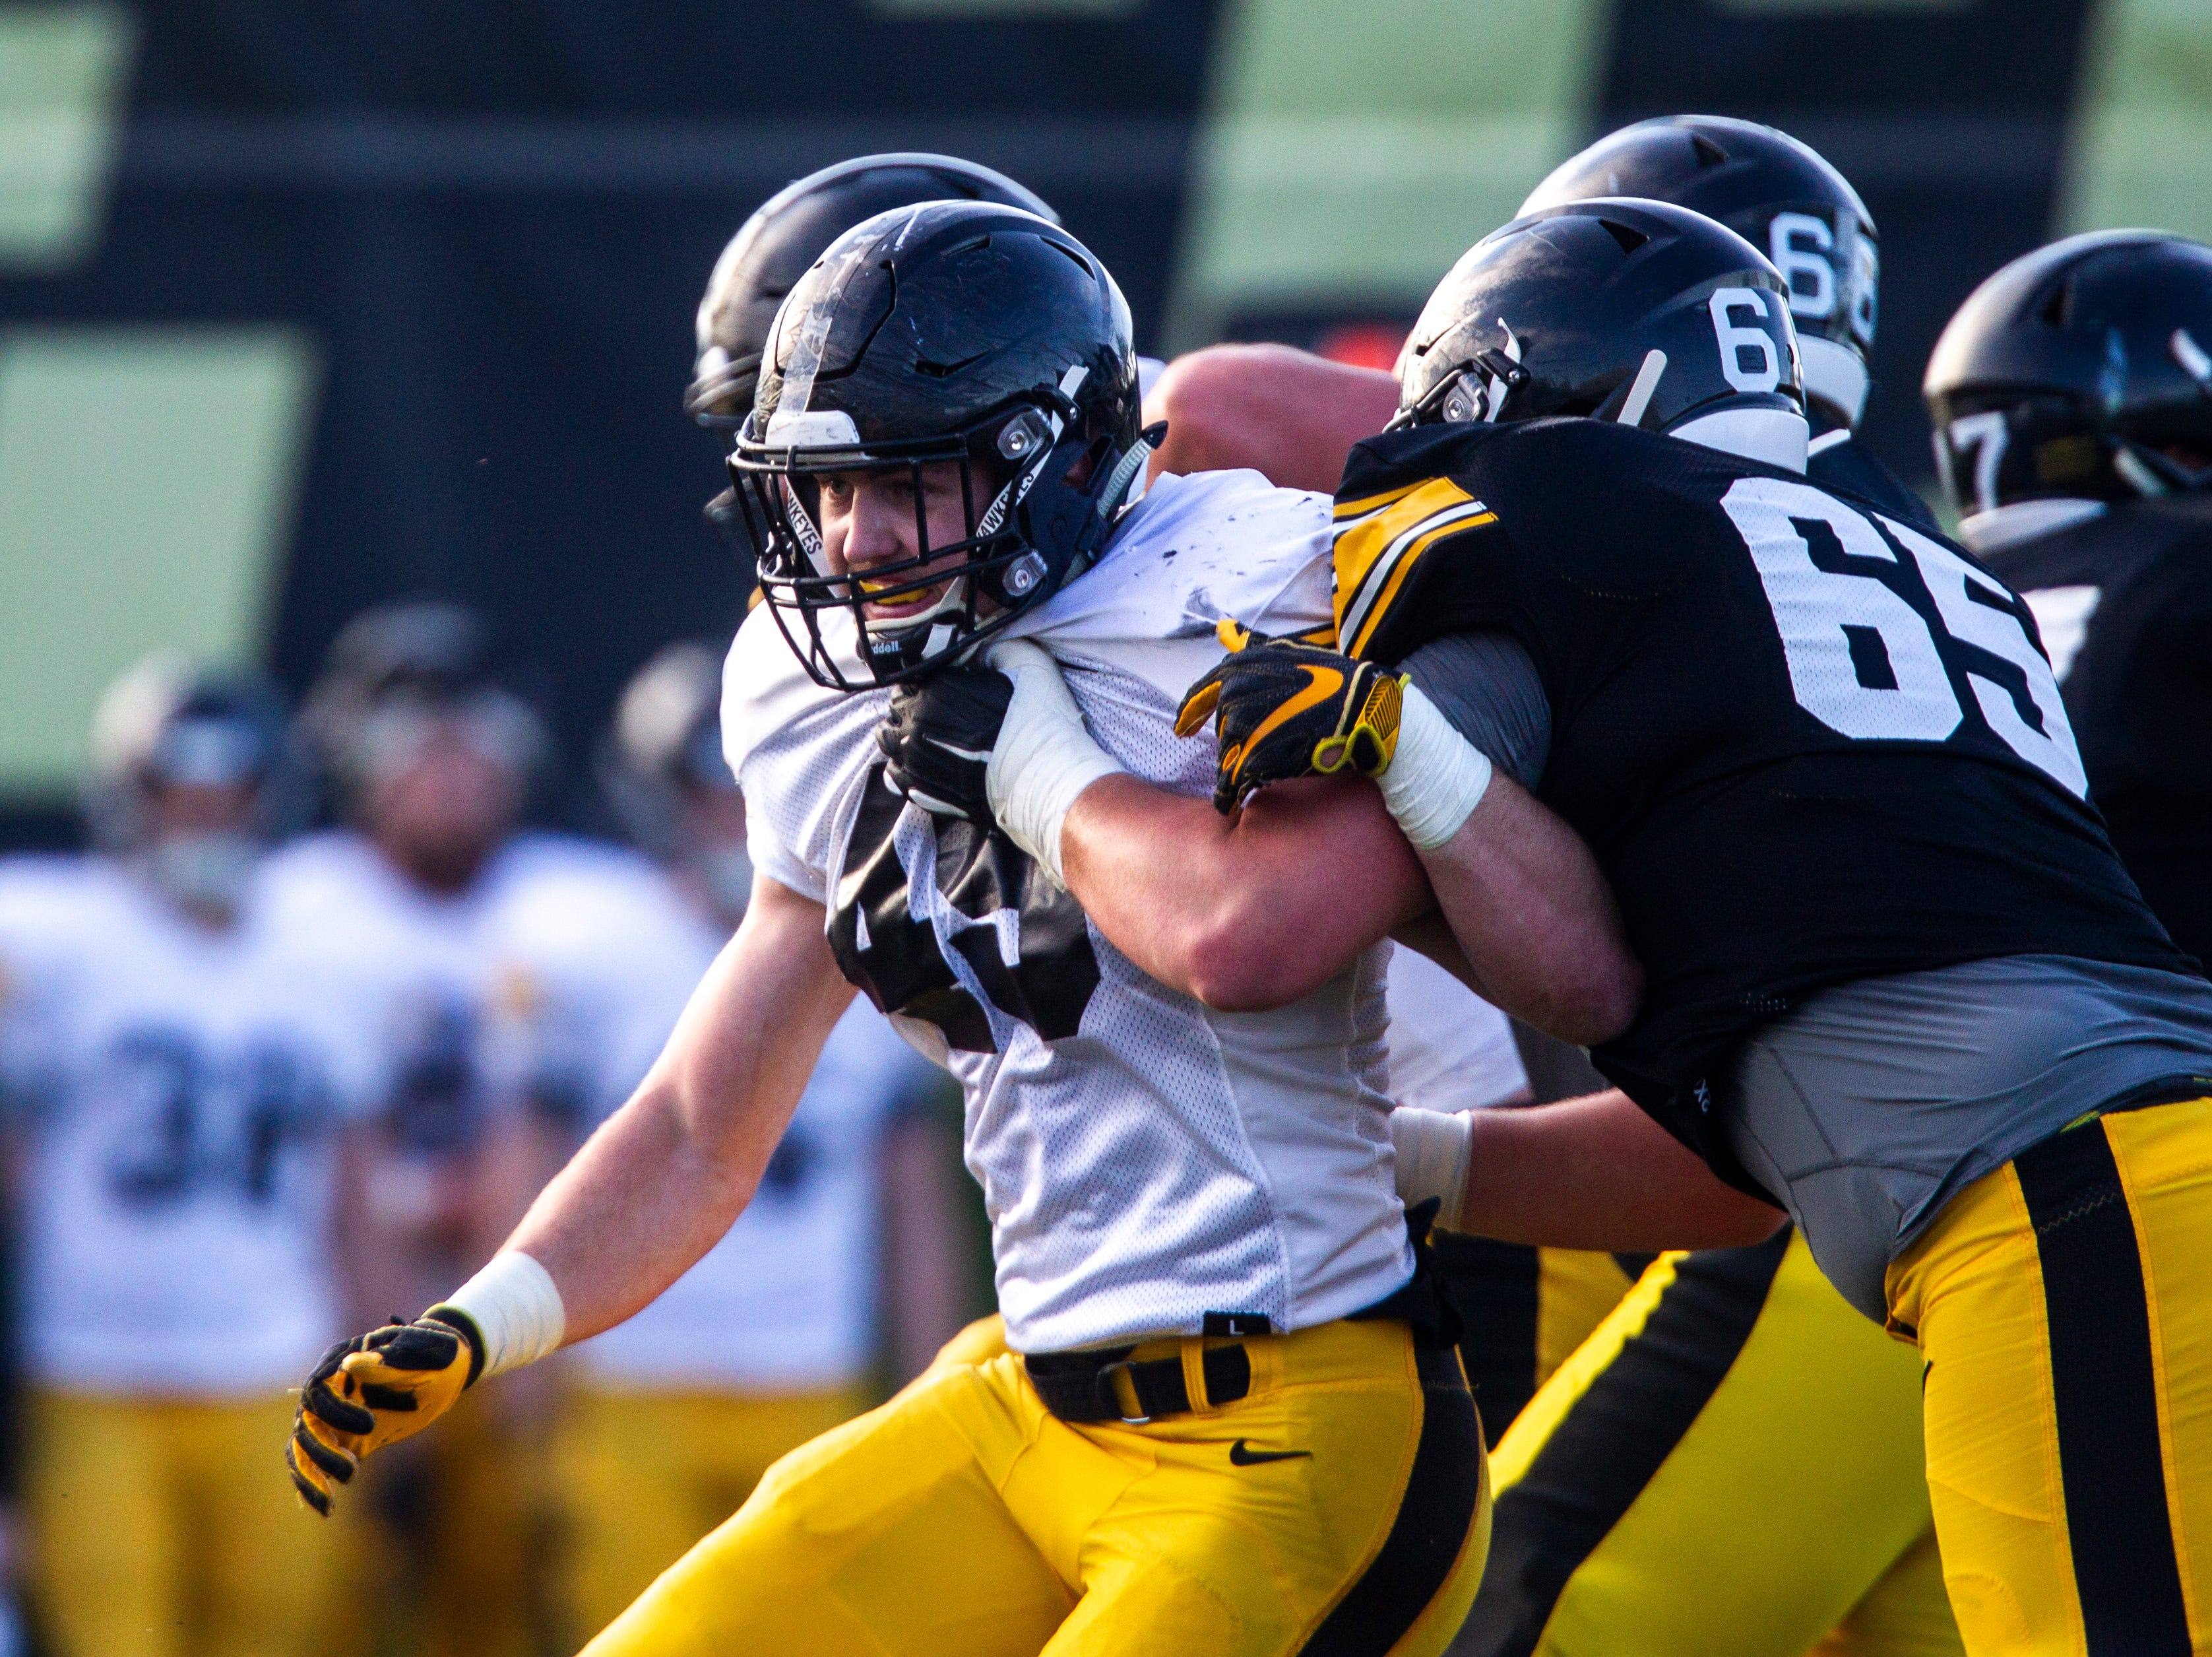 Iowa linebacker Nick Niemann (49) breaks past center Tyler Linderbaum during the final spring football practice, Friday, April 26, 2019, at the University of Iowa outdoor practice facility in Iowa City, Iowa.